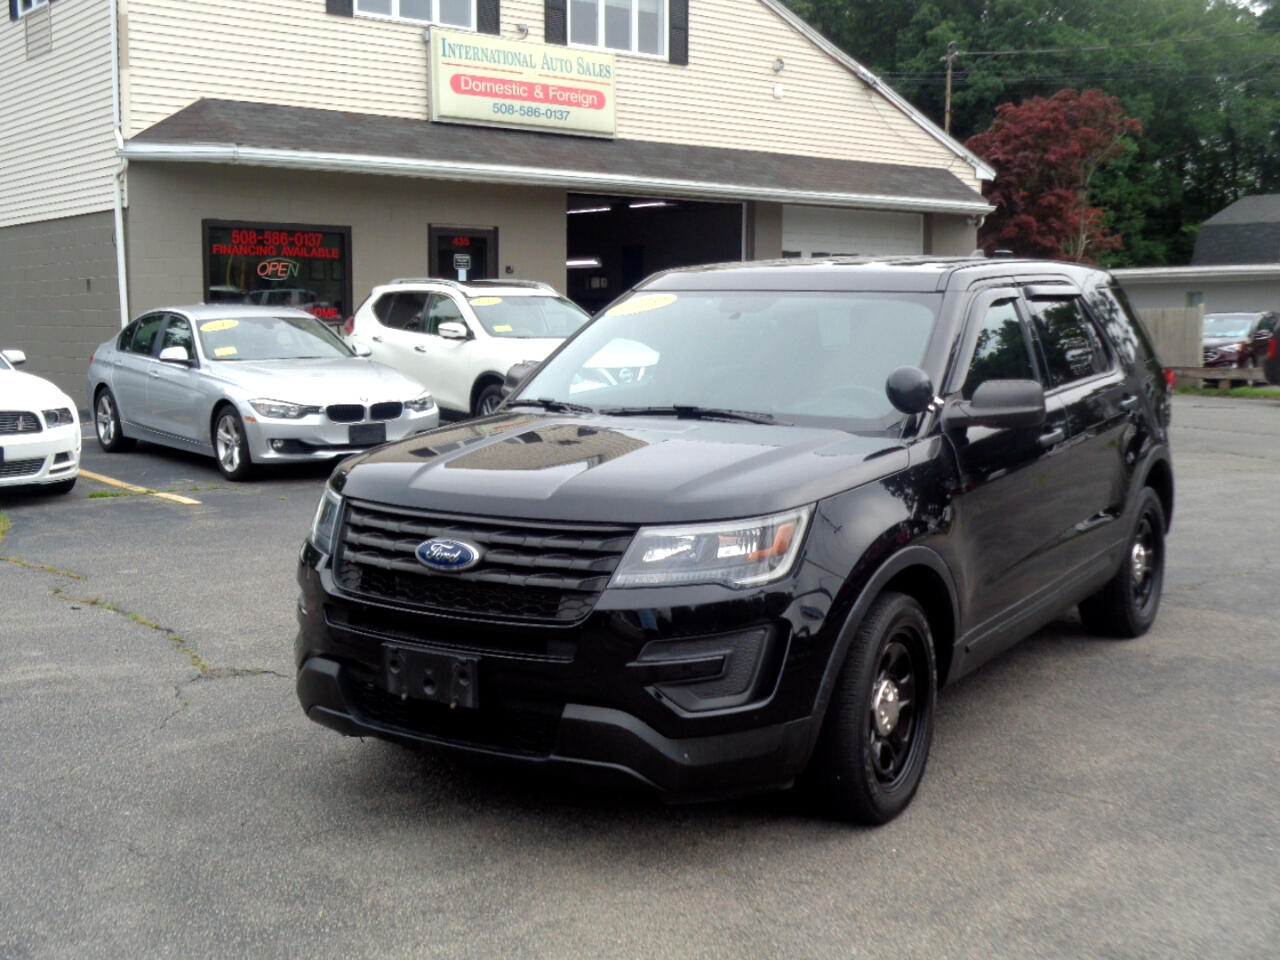 Ford Explorer Police 4WD 2019